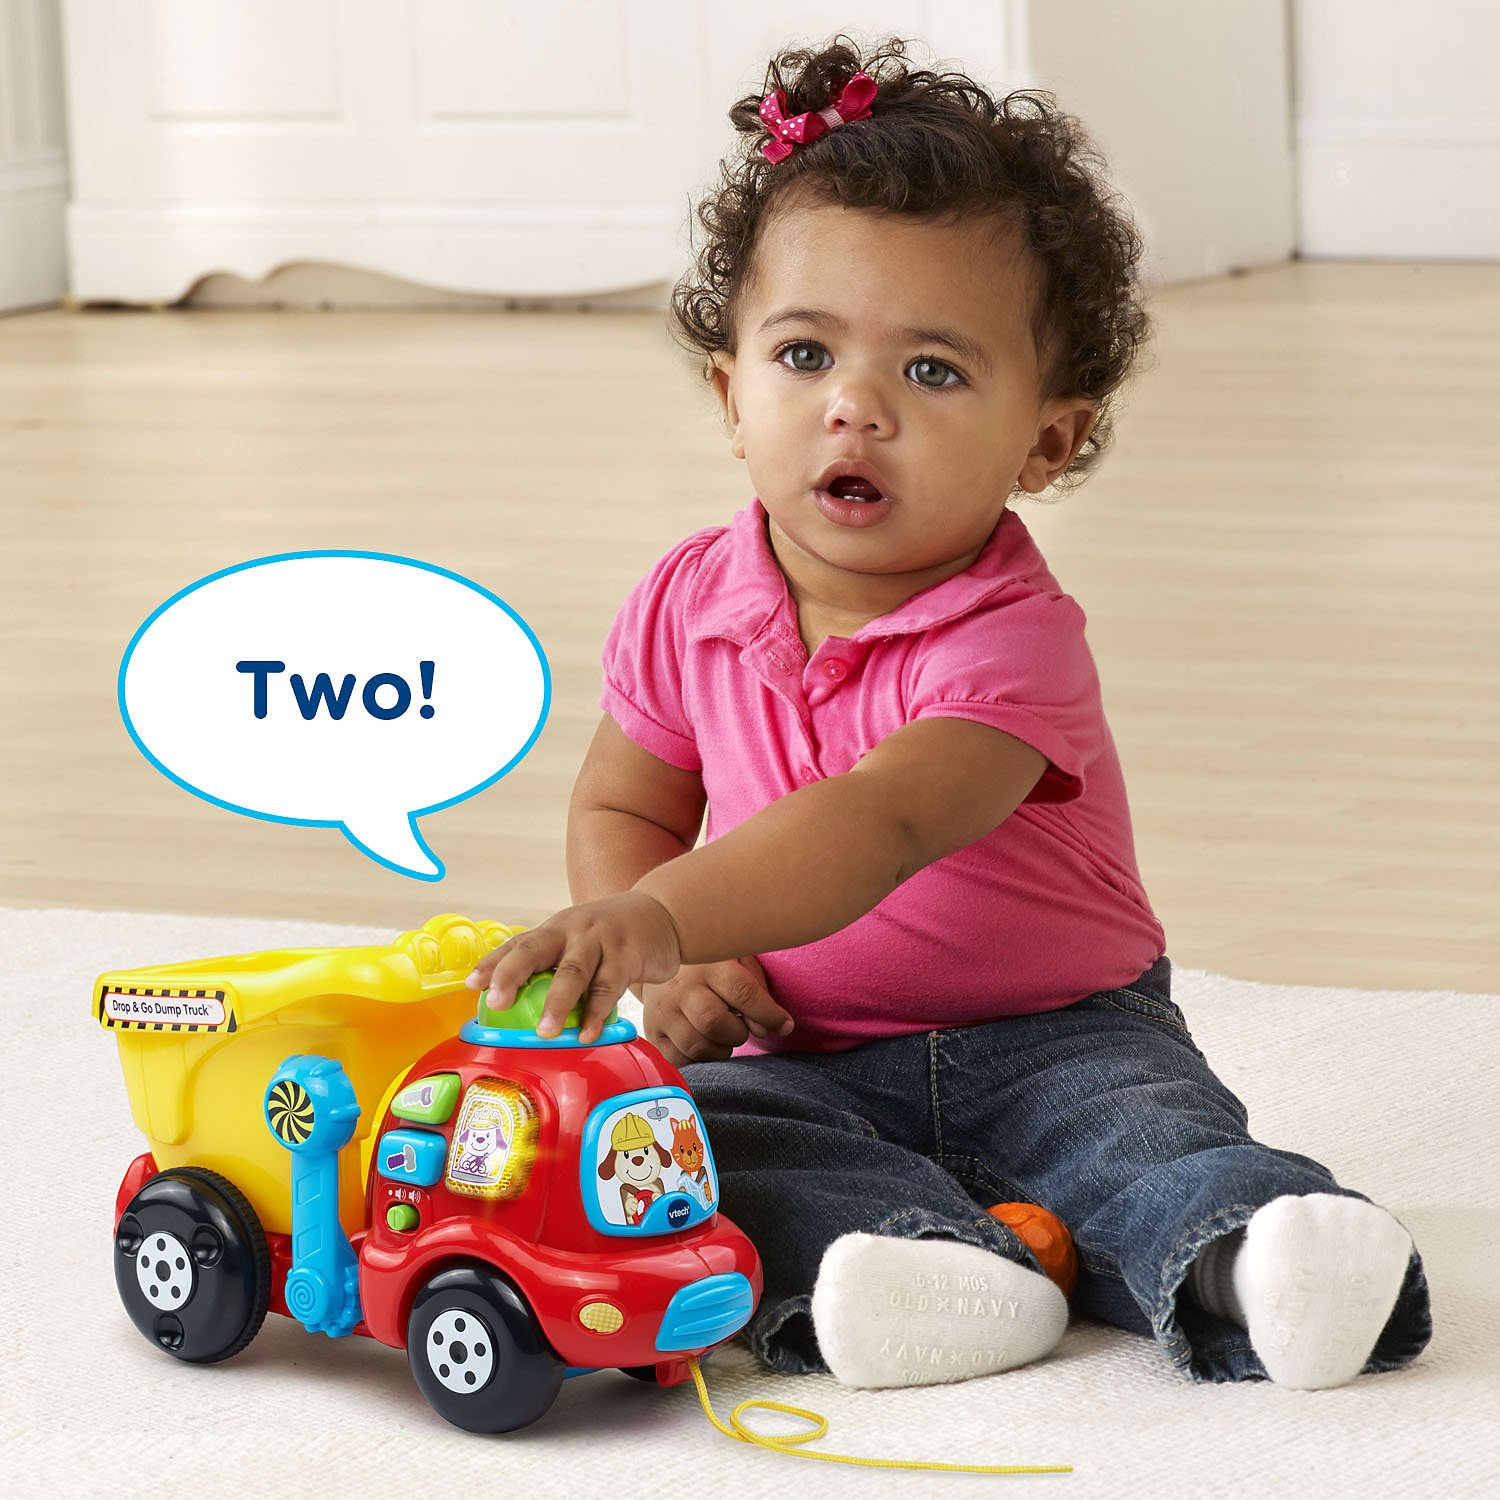 Best Push Toys for Toddlers